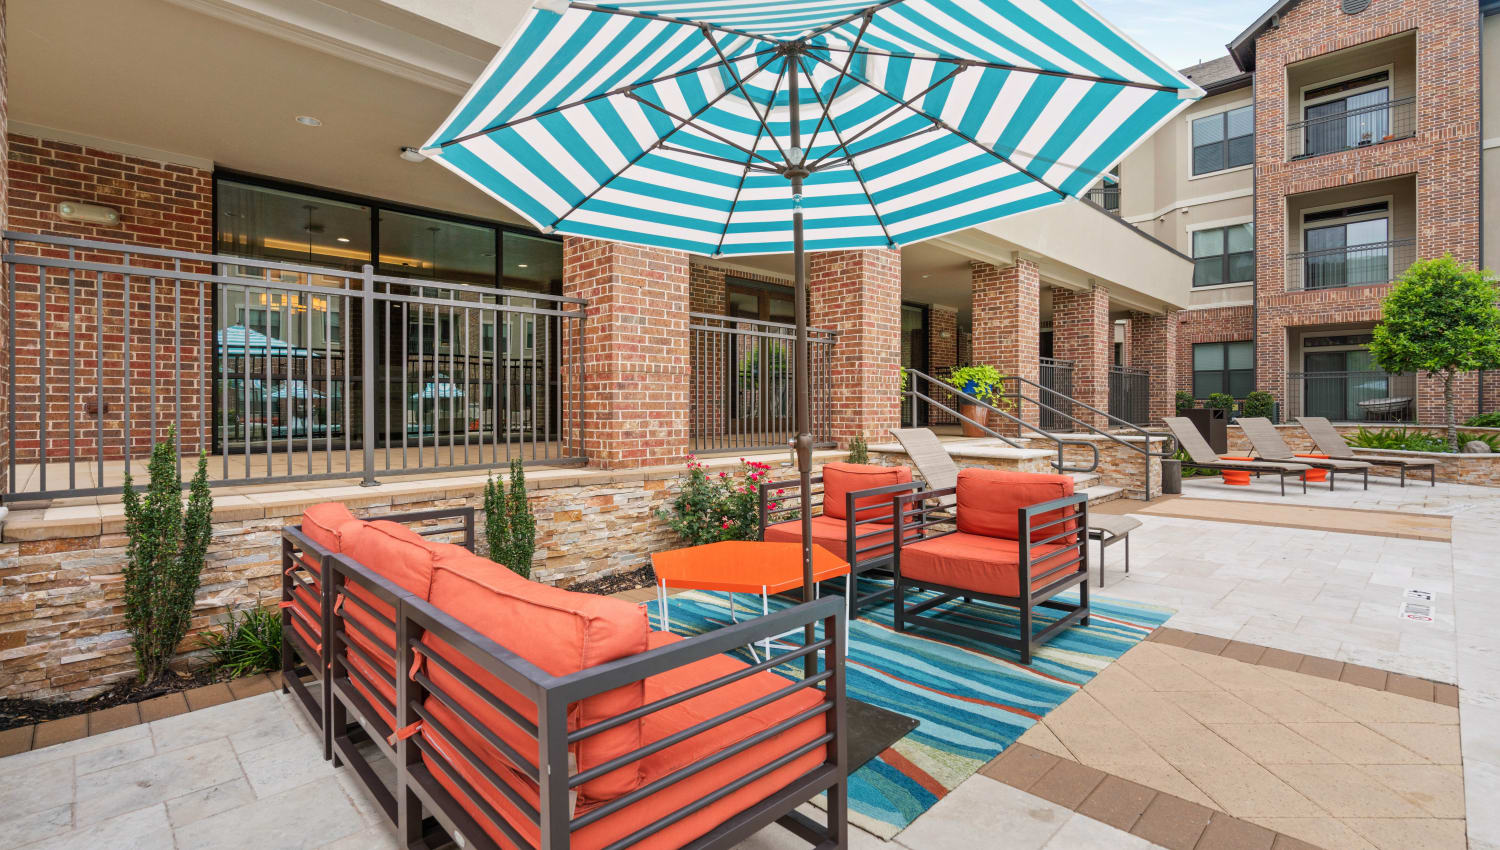 Umbrella providing shade at one of the outdoor lounge areas at Olympus Sierra Pines in The Woodlands, Texas